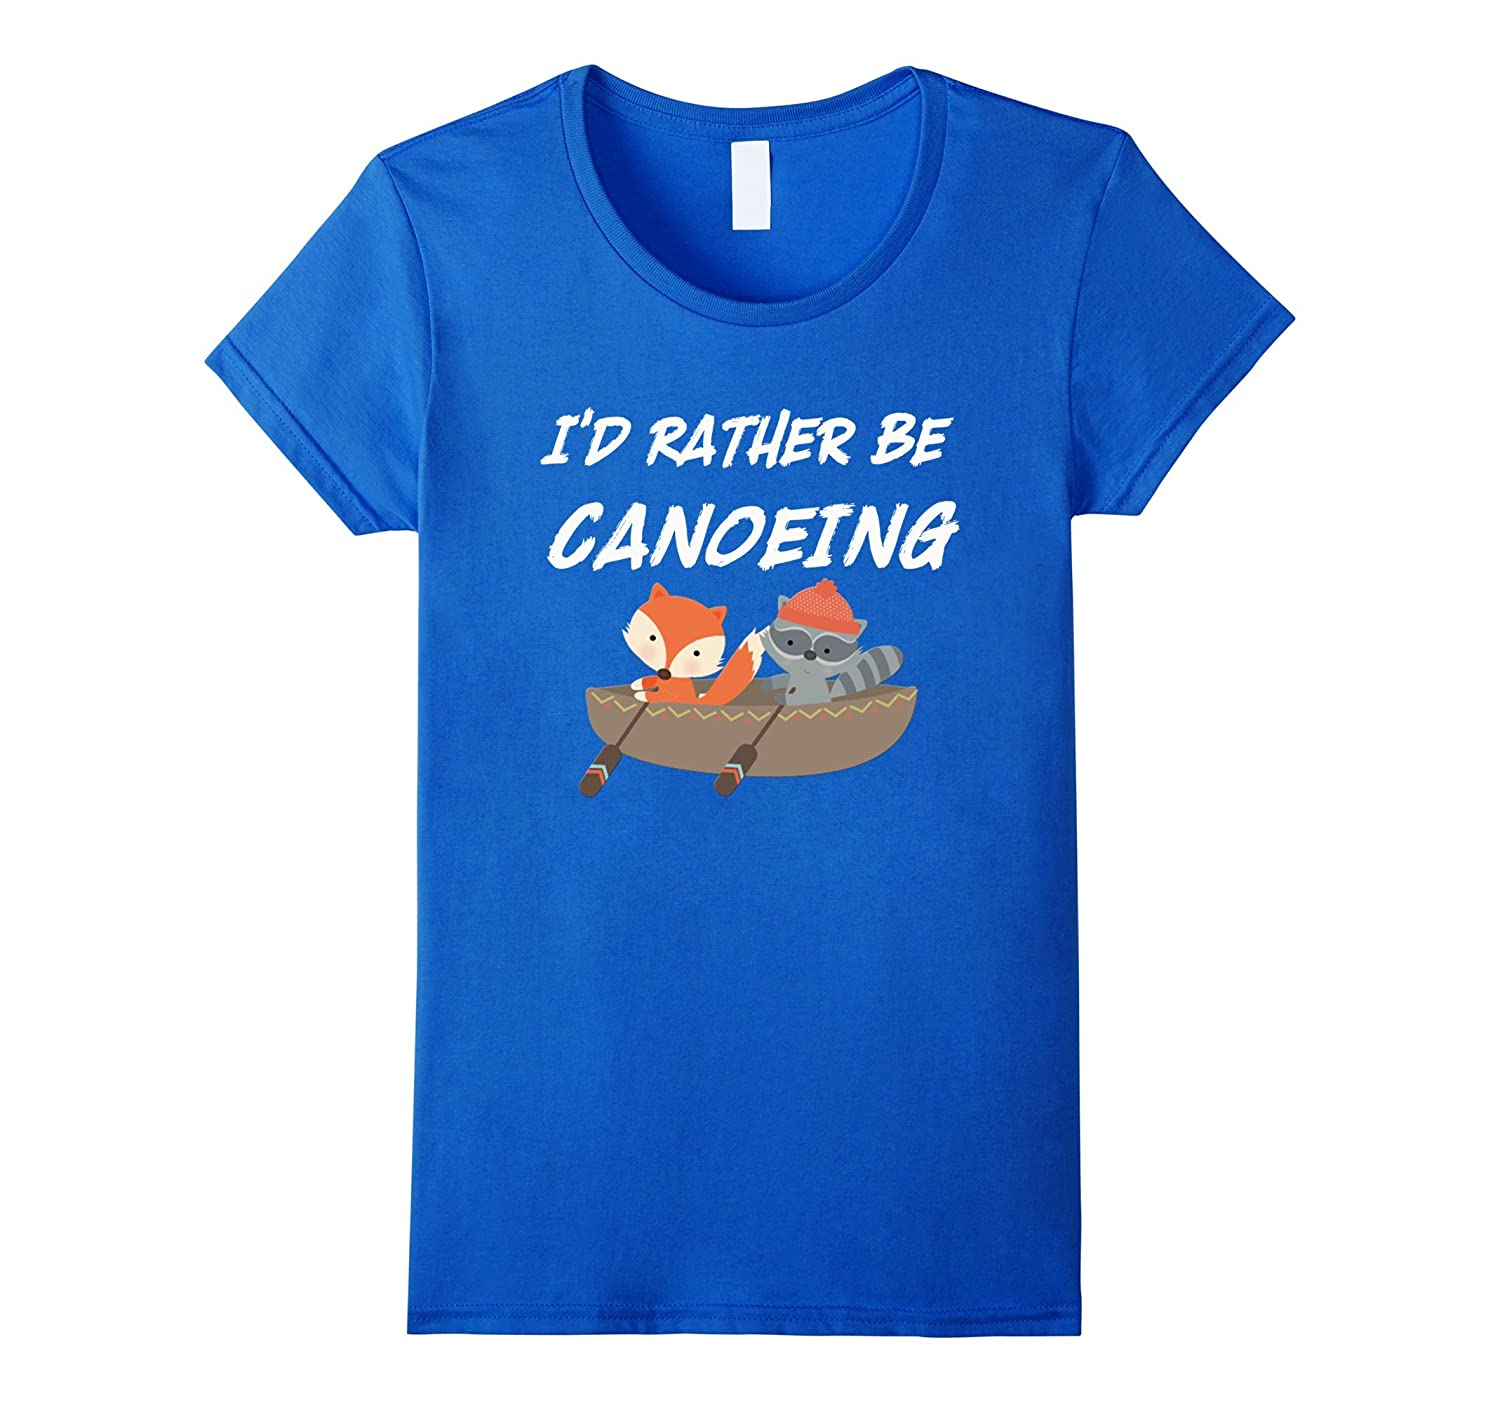 I'd Rather Be Canoeing T-Shirt Funny Paddling Holiday Shirt